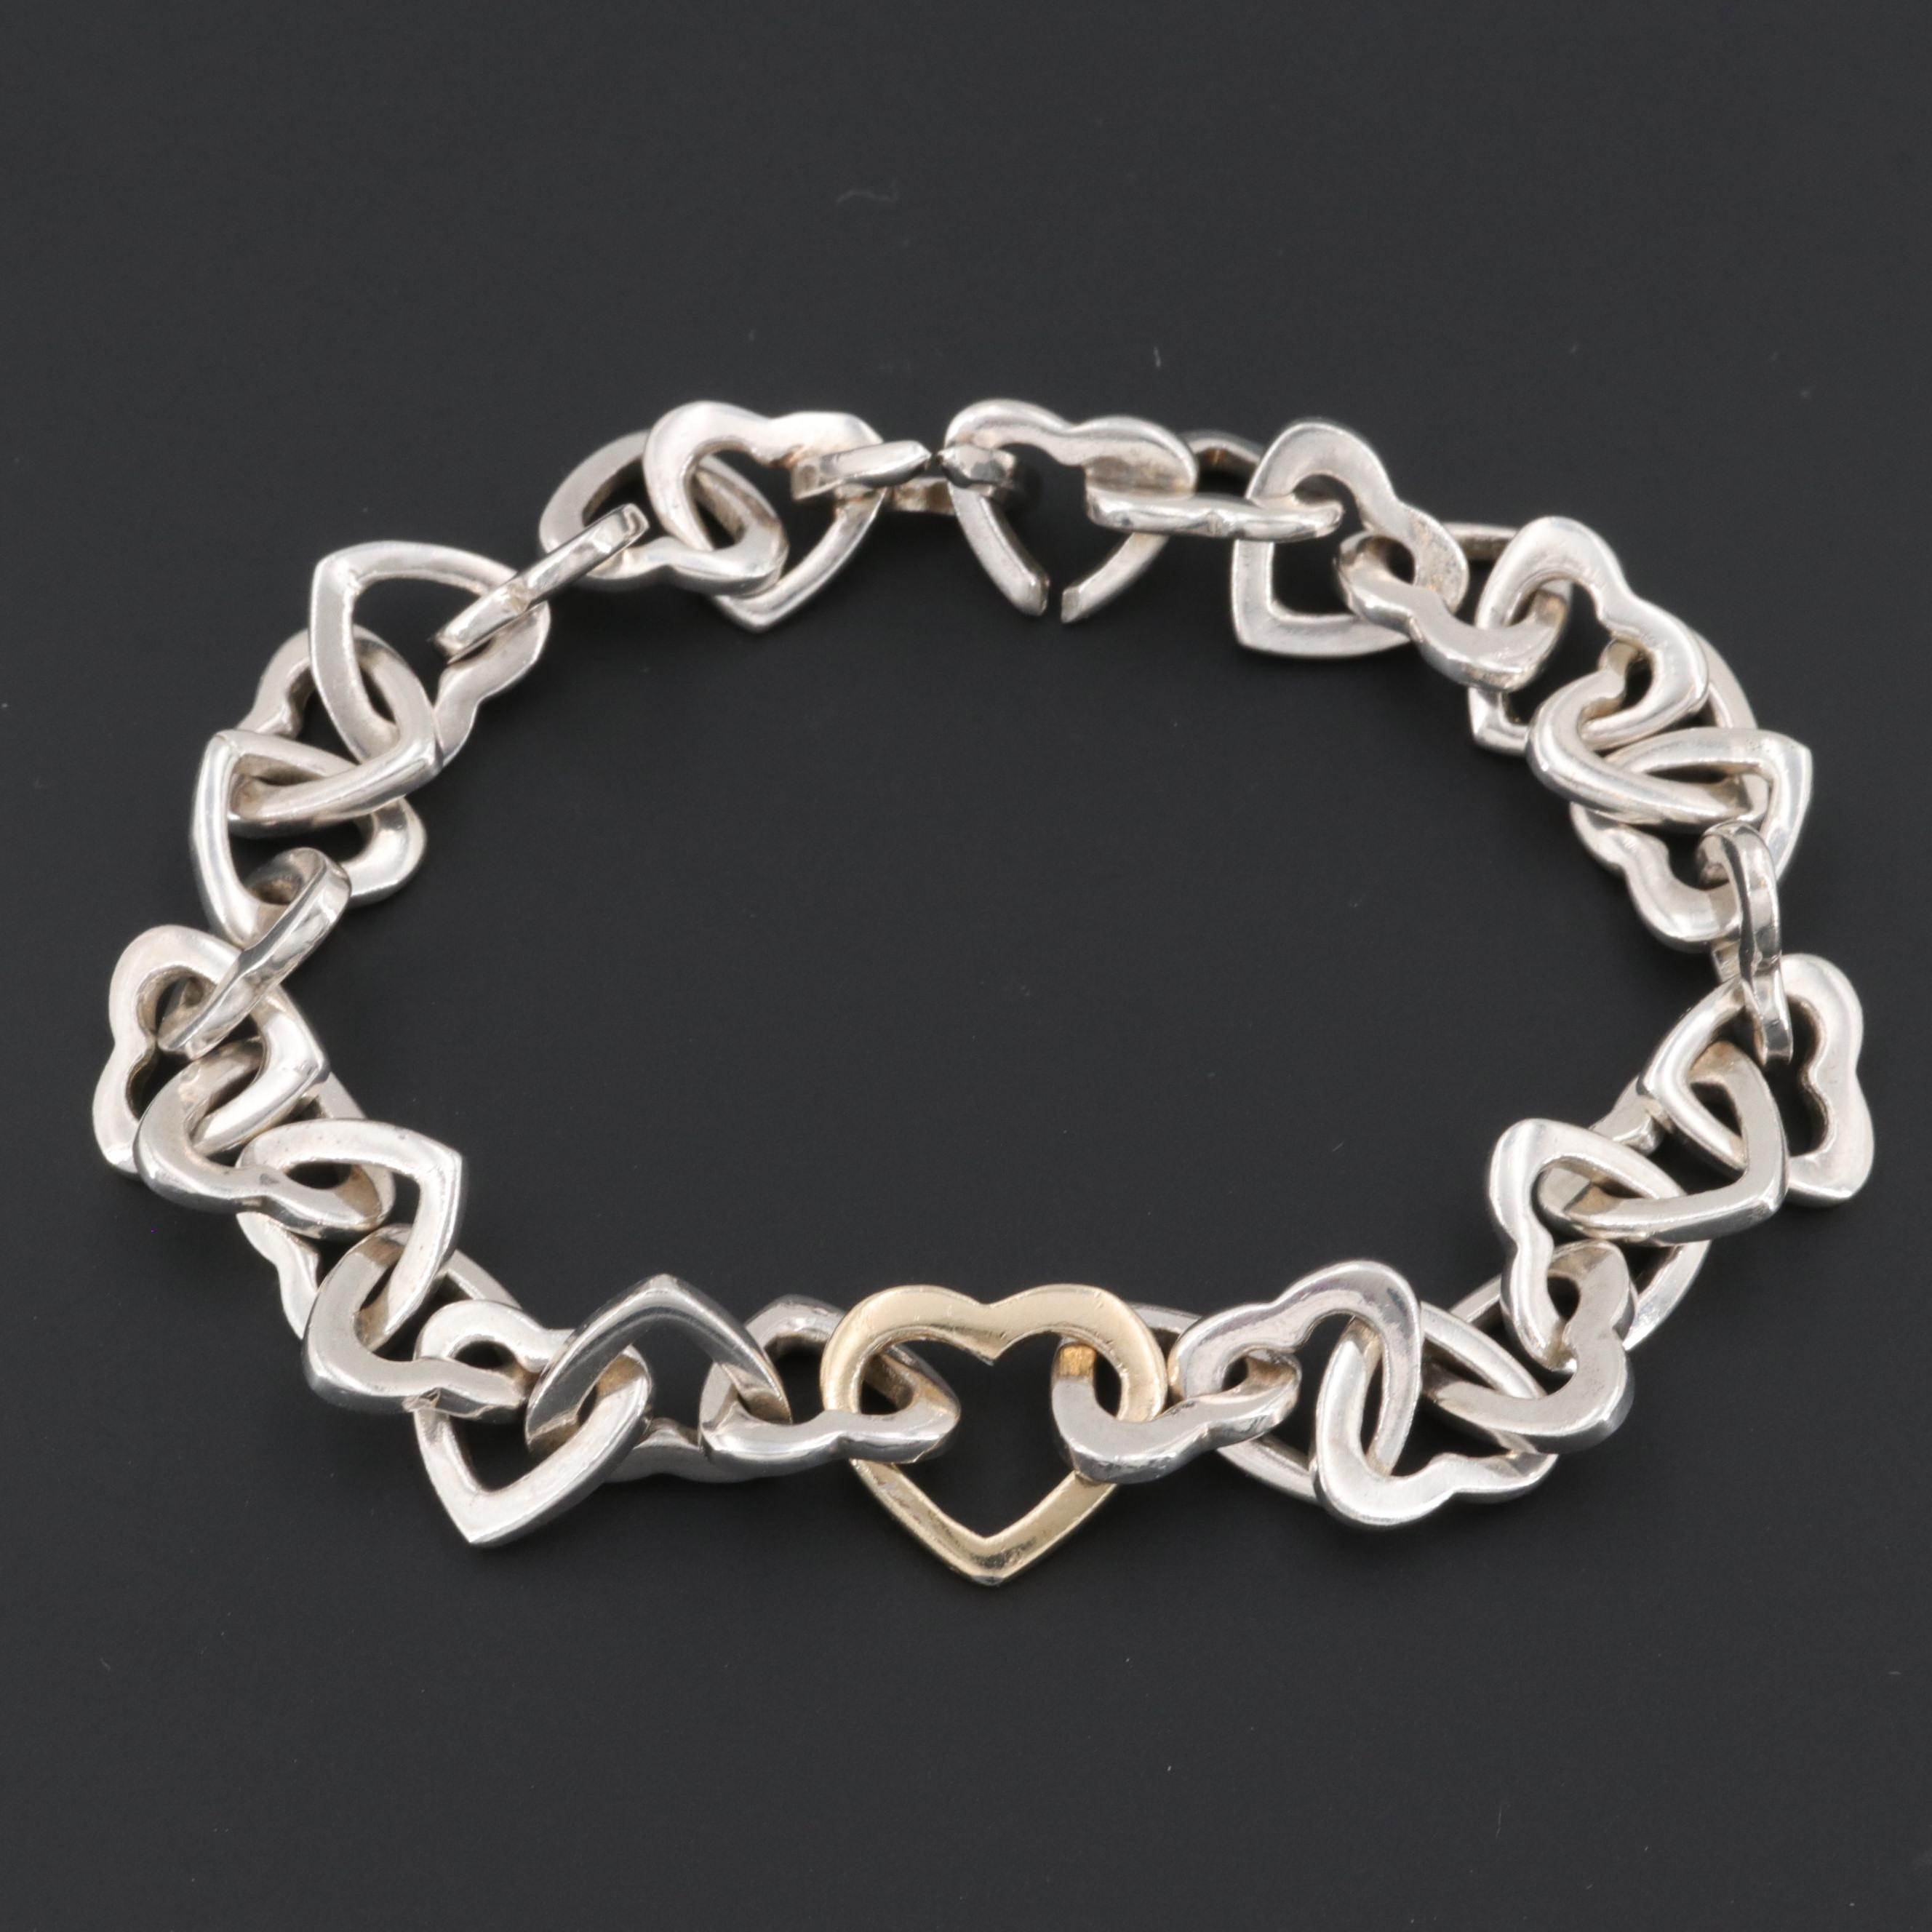 Sterling Silver Heart Link Bracelet with Gold Wash Accent